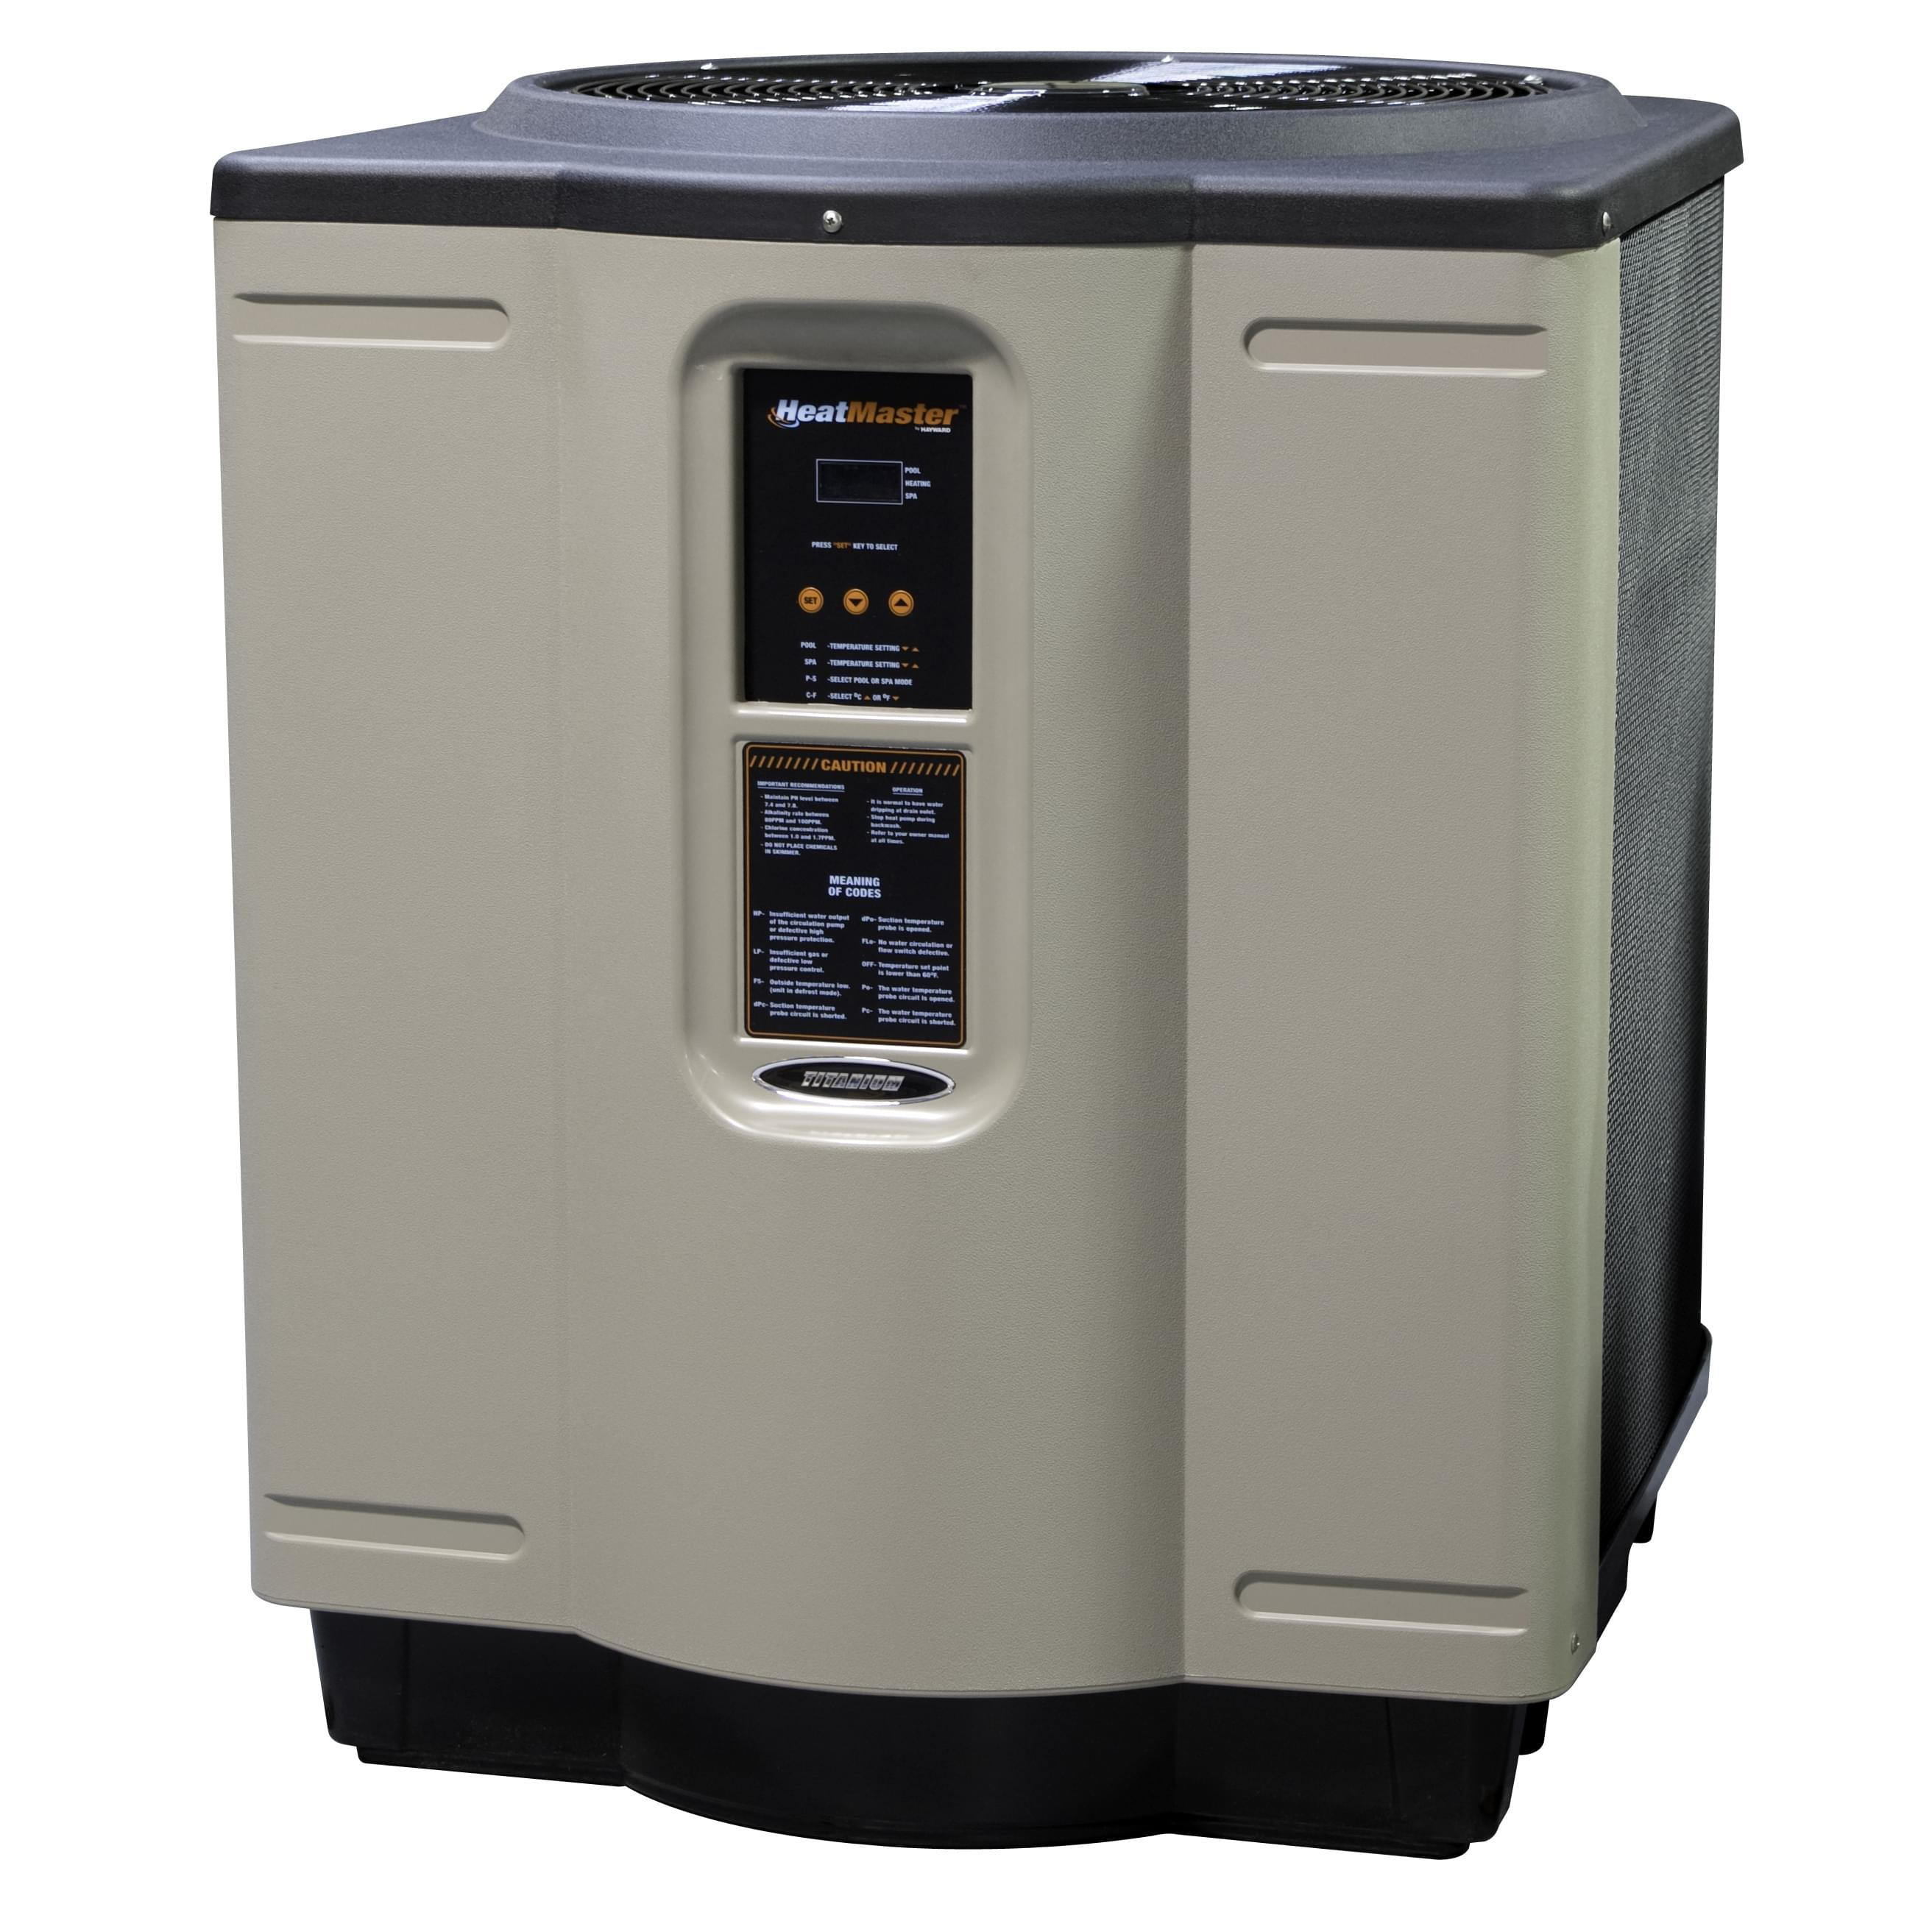 Hayward Heat Pump 140 000 Btu Pool Supplies Canada